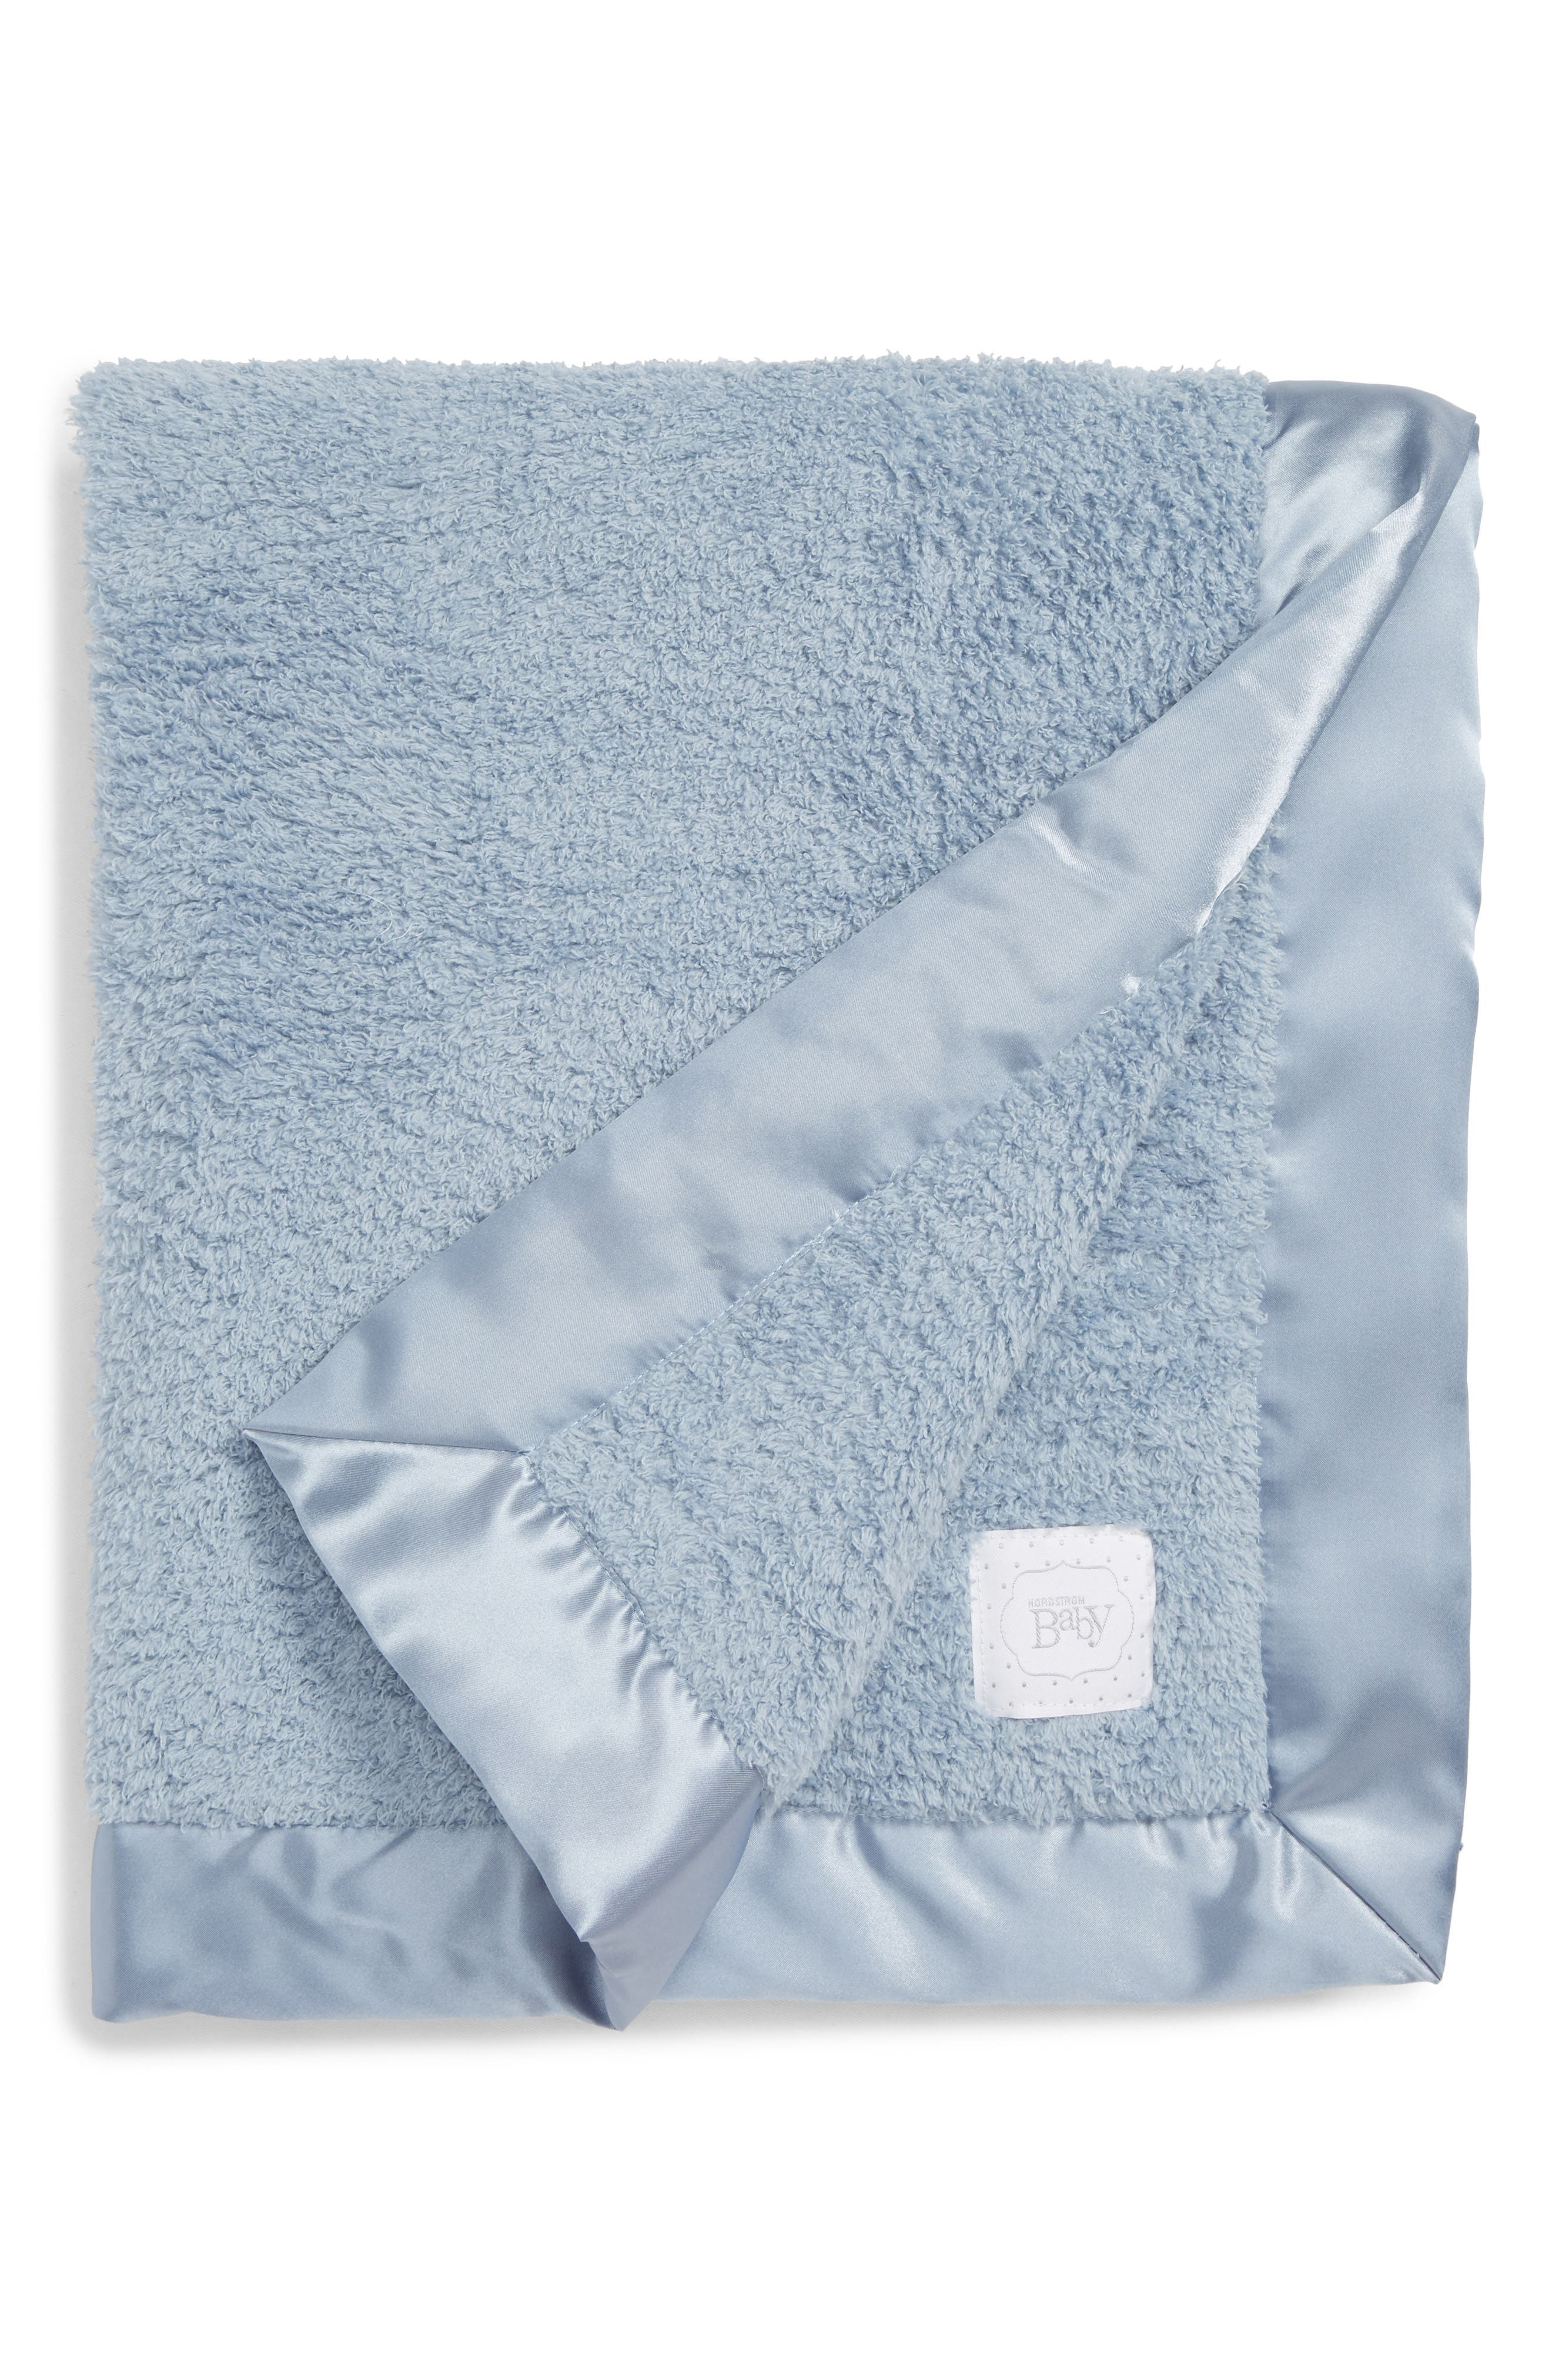 NORDSTROM BABY, Luxe Chenille Blanket, Main thumbnail 1, color, 451